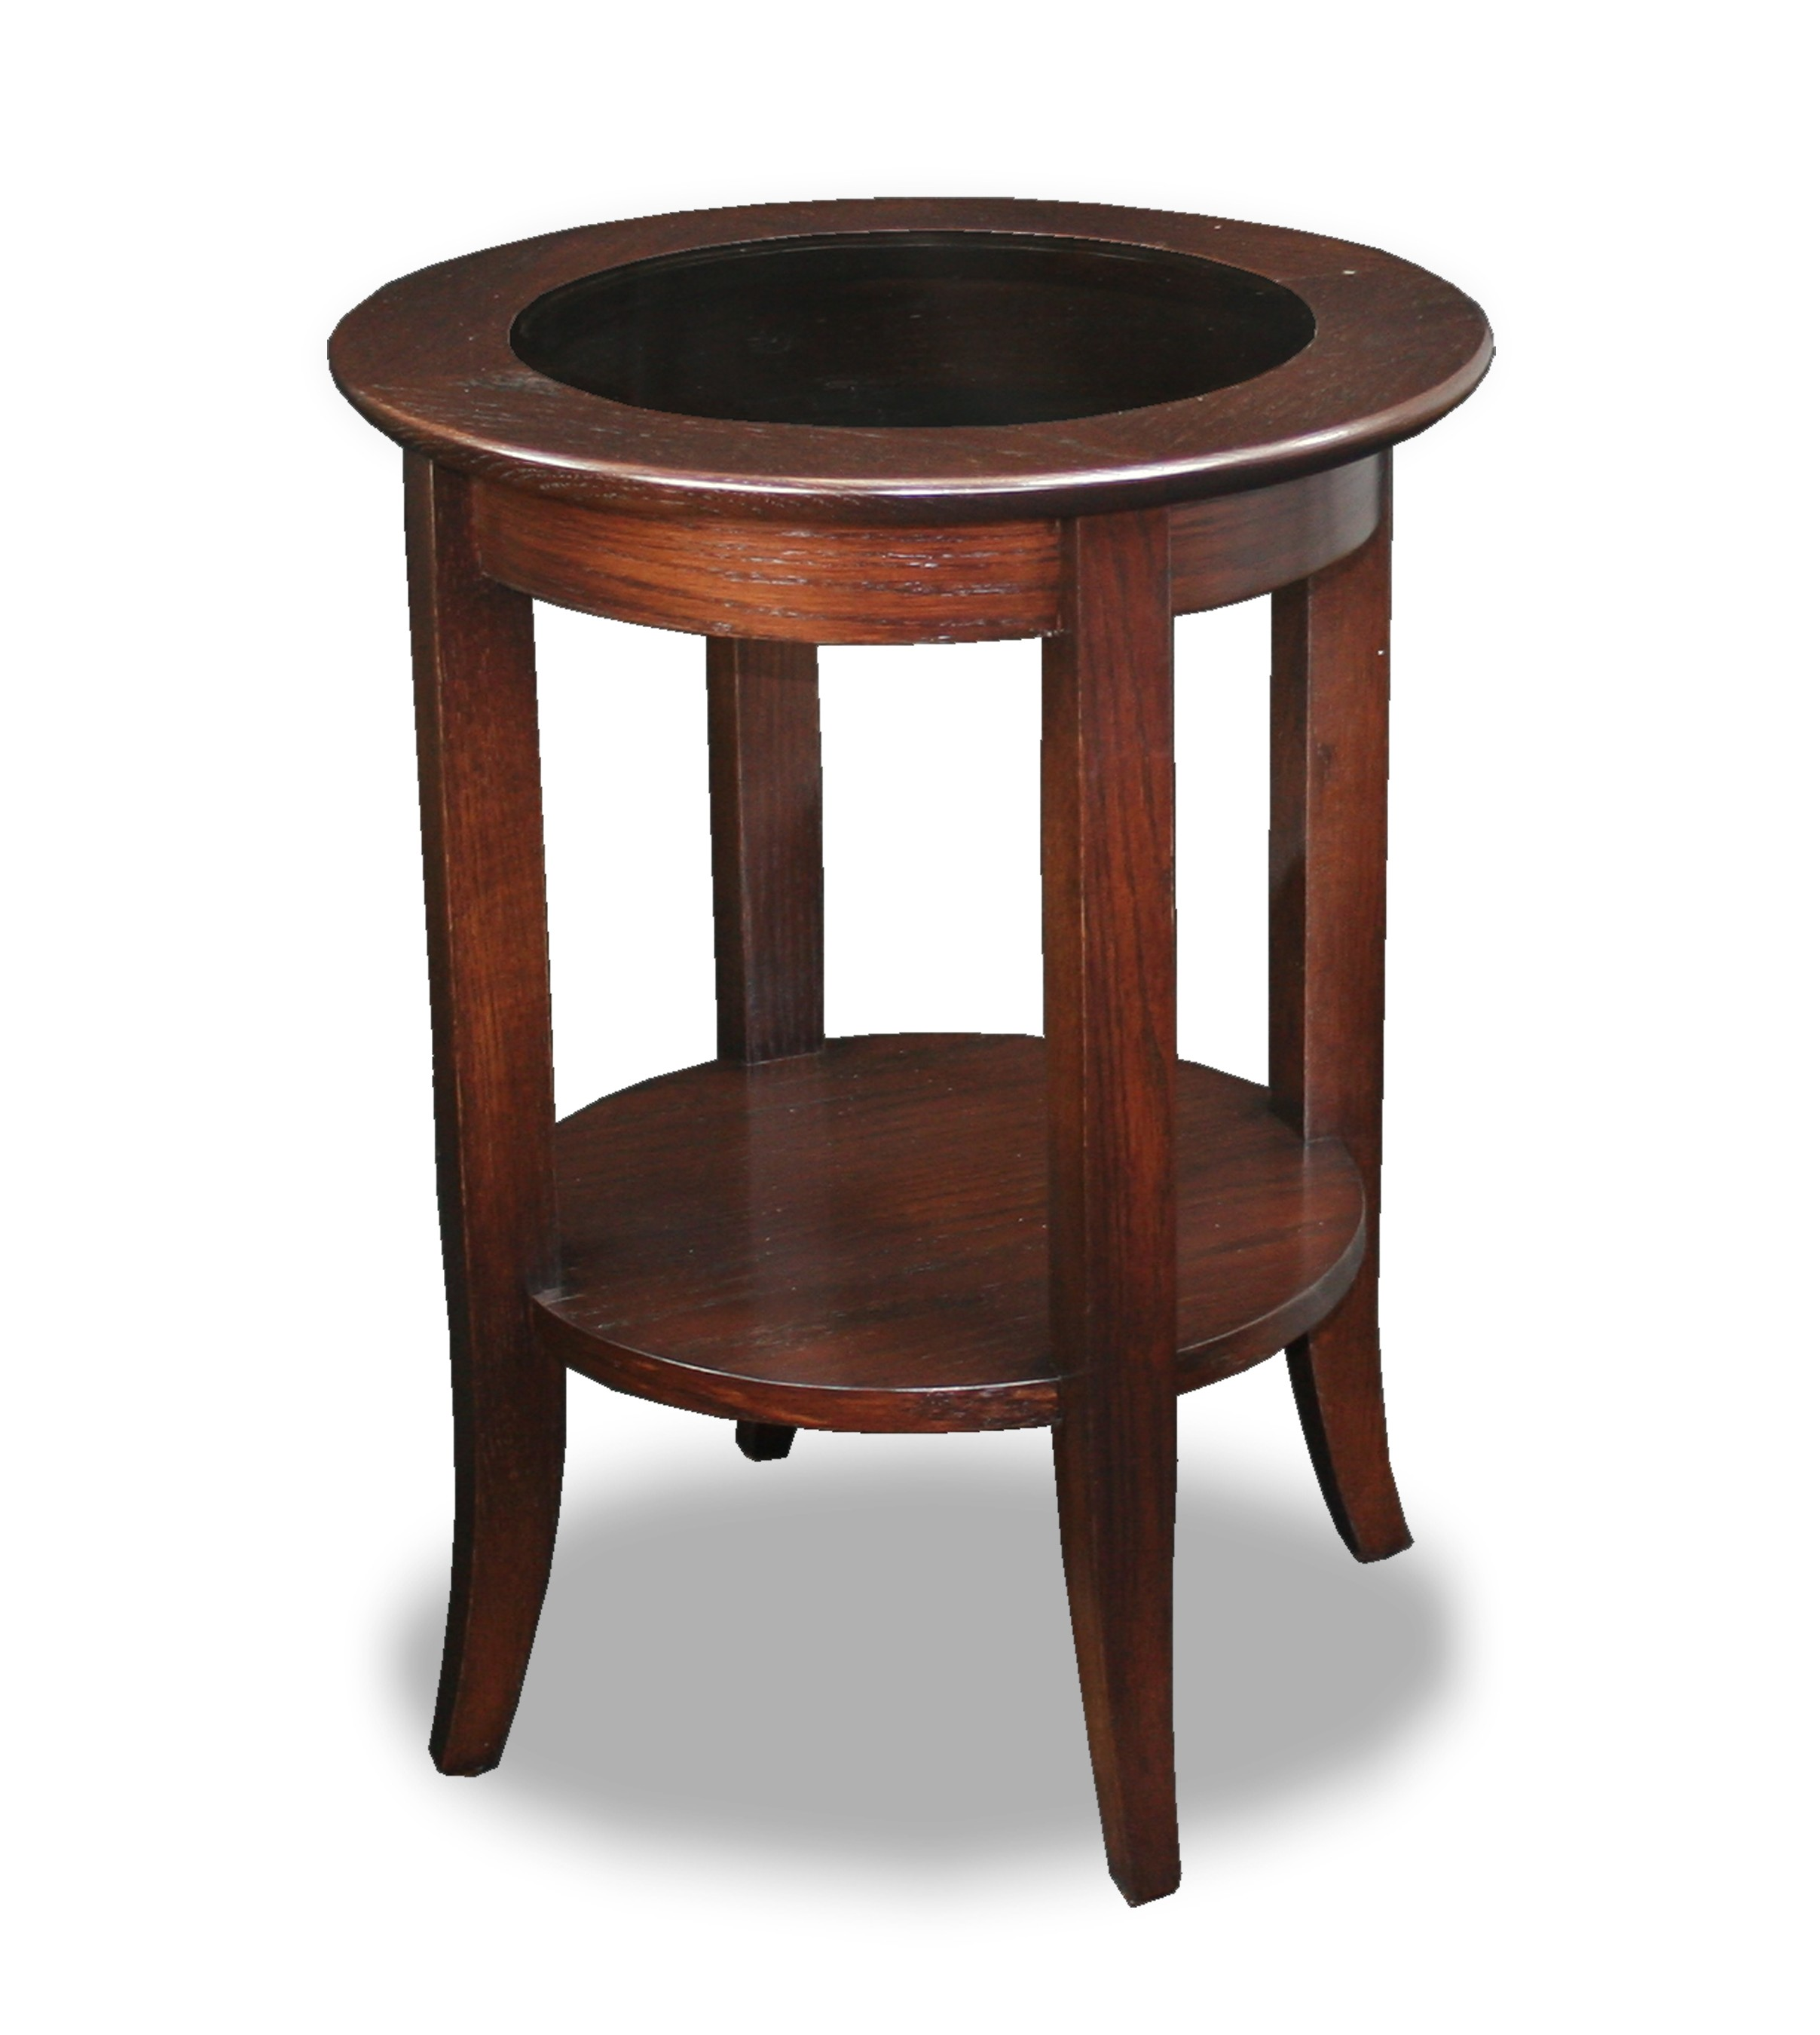 accent tables round table black living room end wood with storage corner for tall side coffee and set dark teal circular drawer full size best small rectangular big green egg home